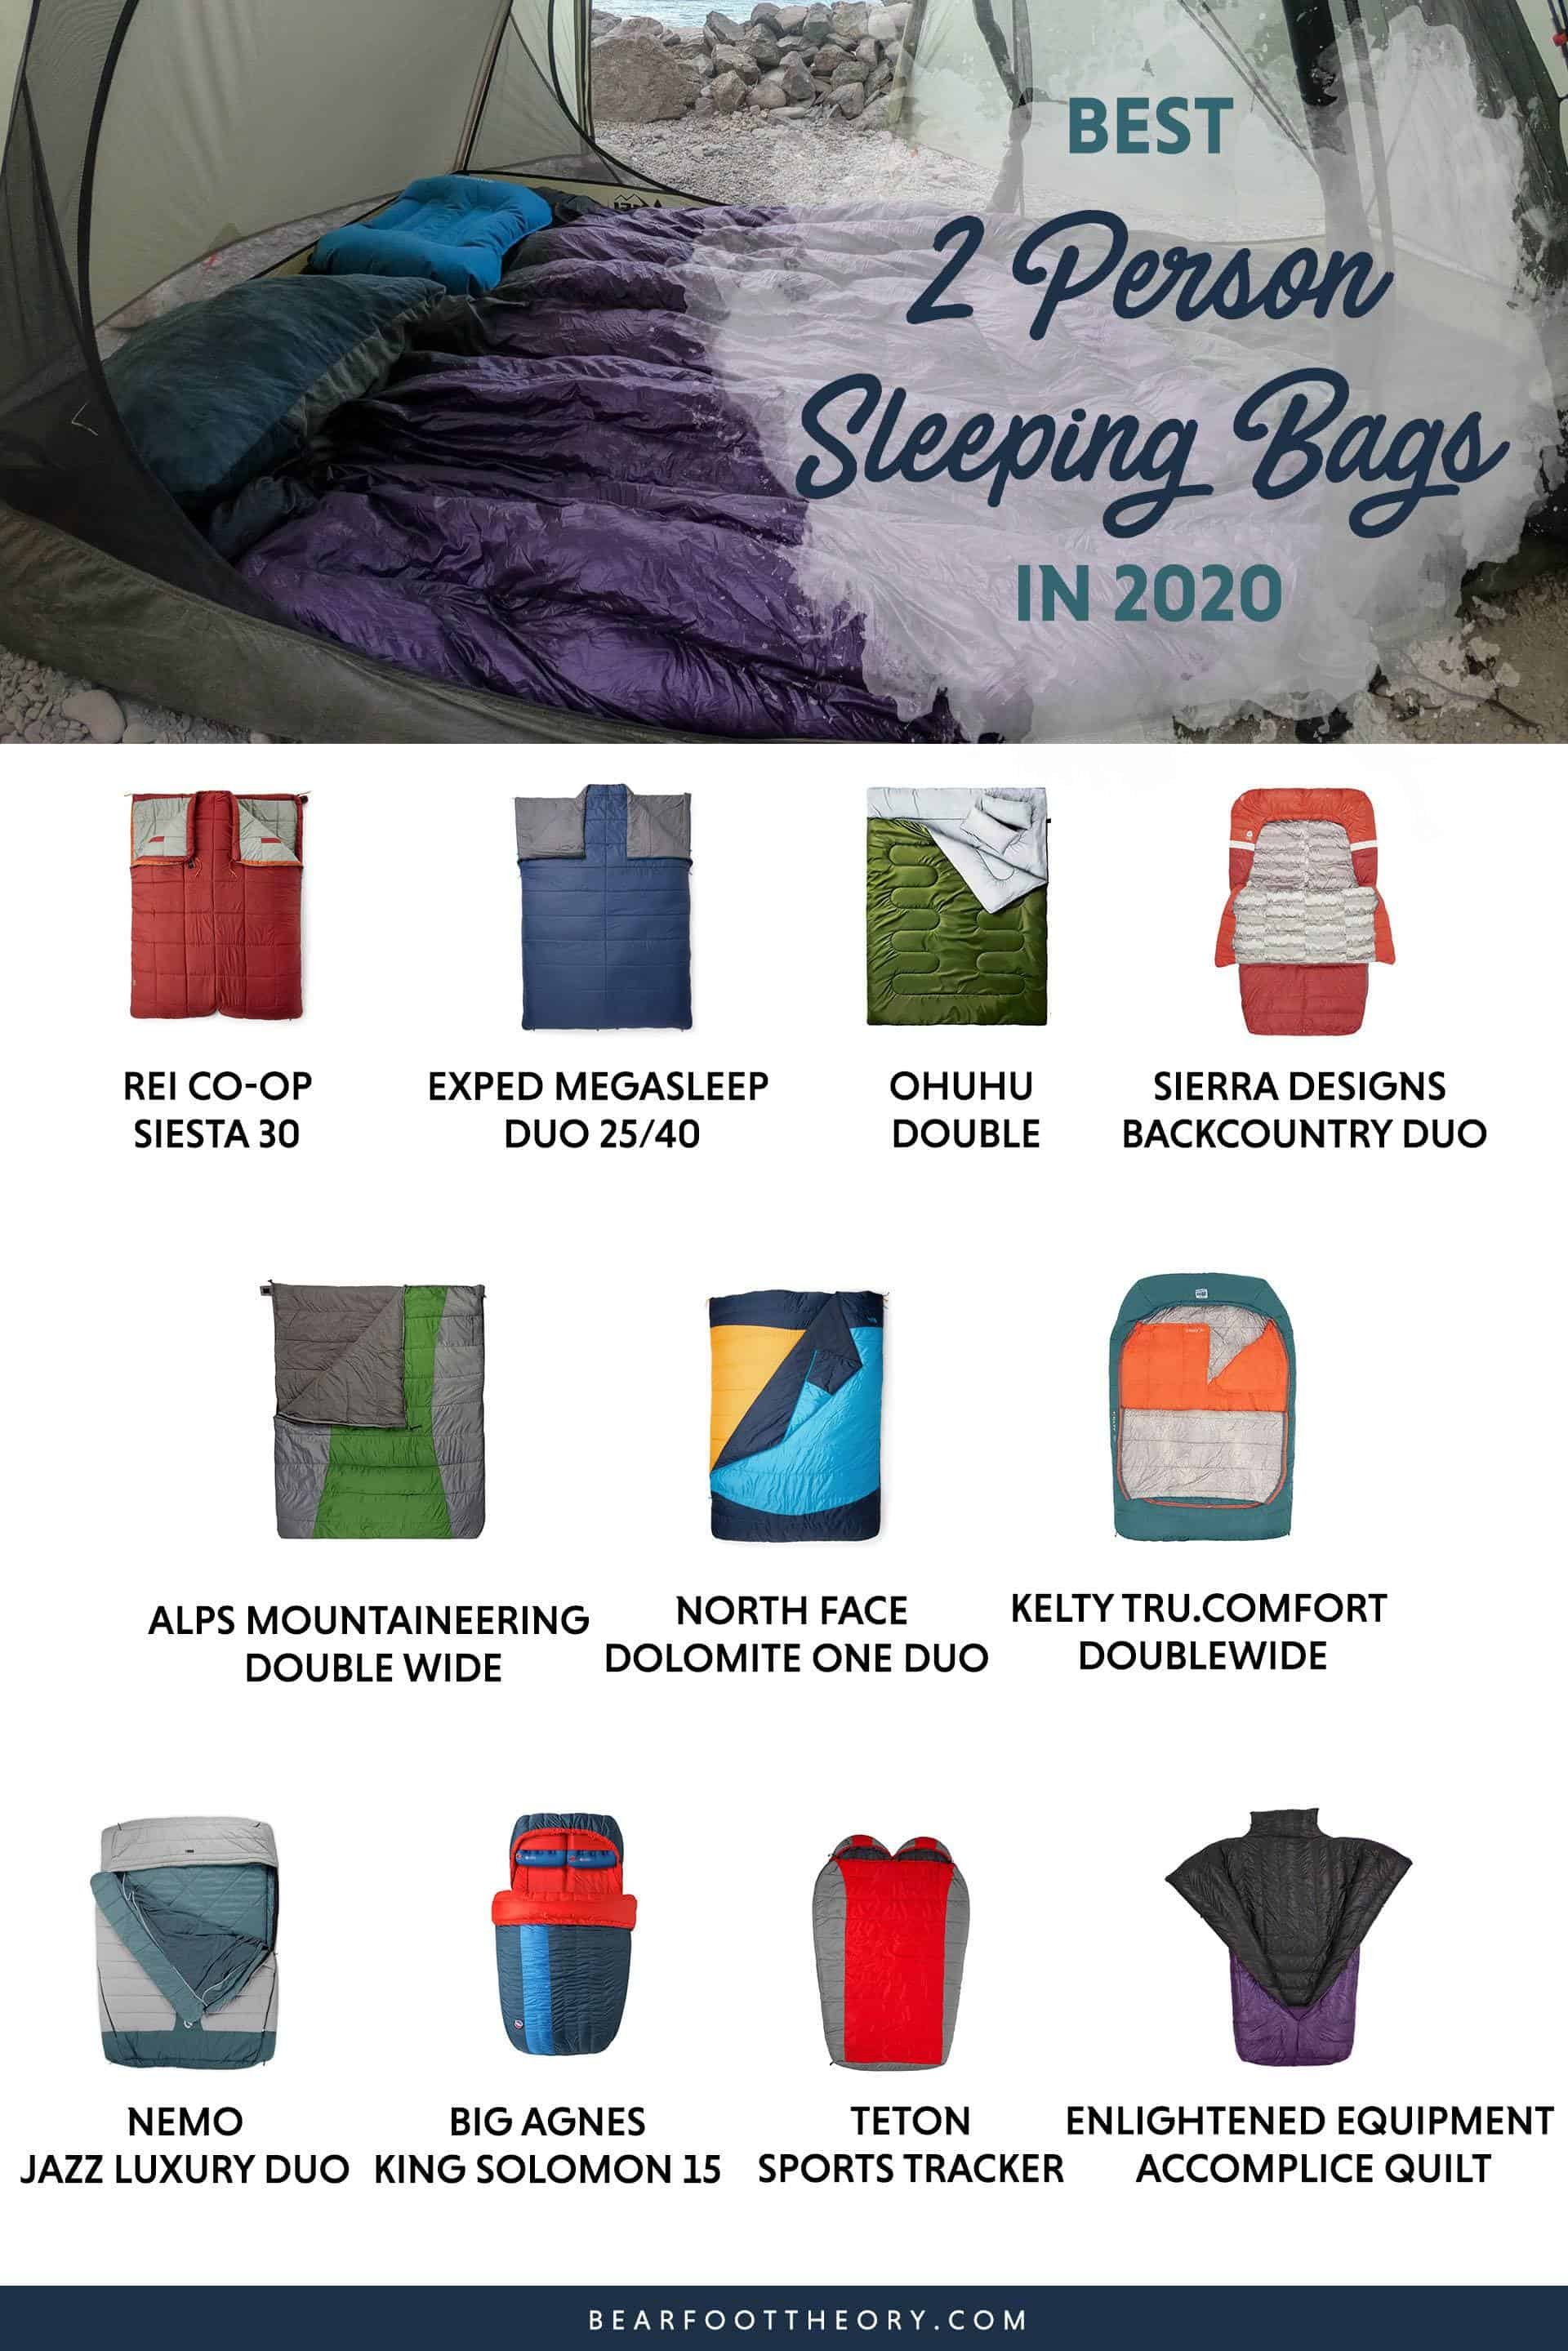 Here are the best double sleeping bags of 2020. Get cozy with these warm, comfortable 2-person sleeping bags ideal for camping and backpacking.